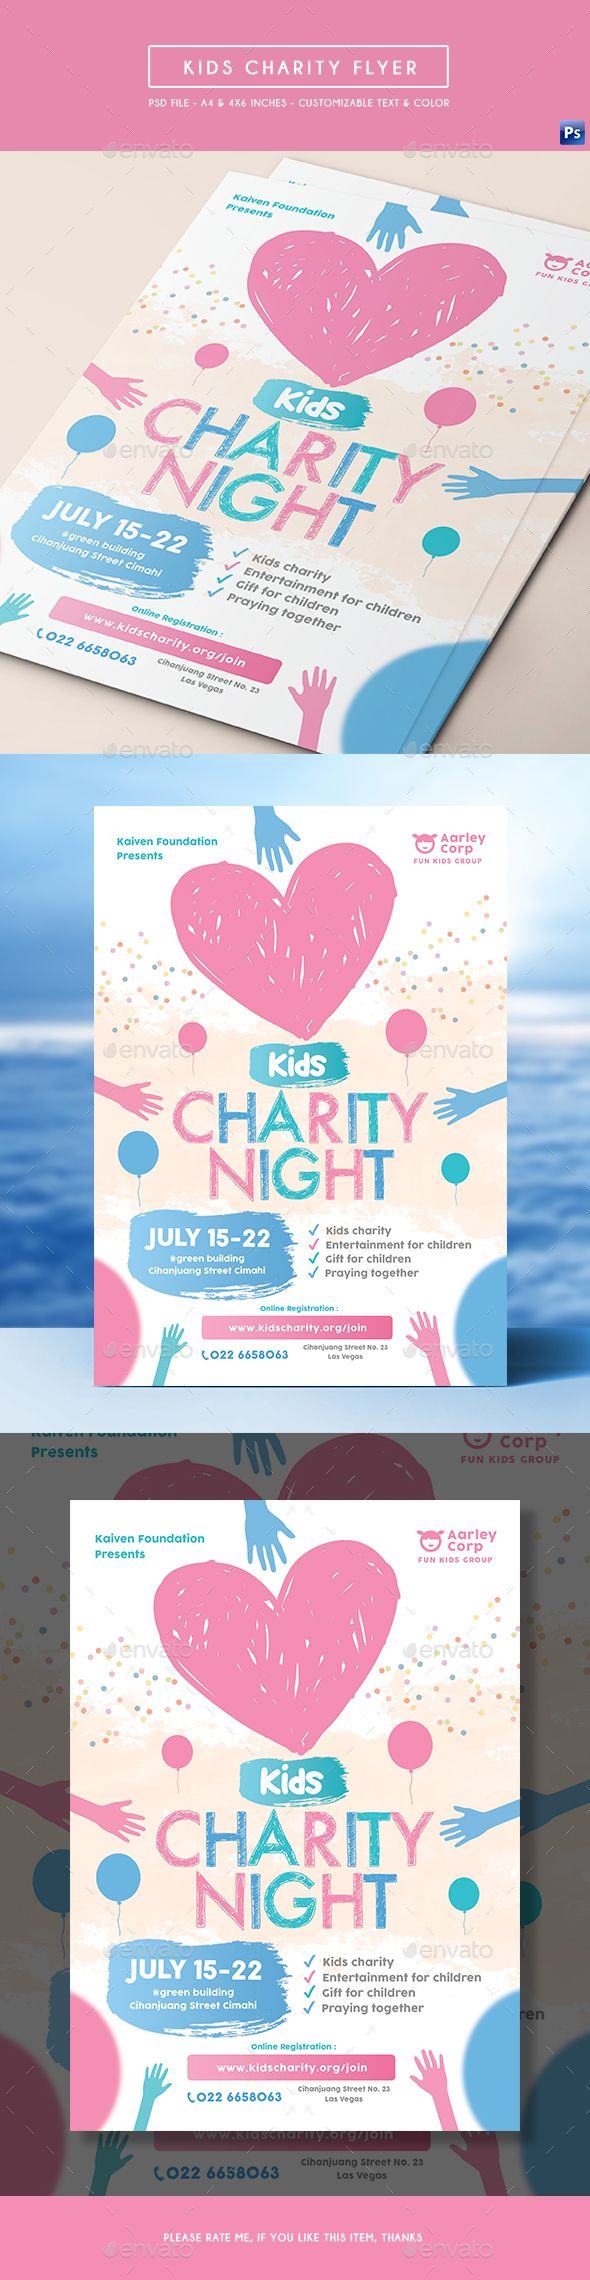 Poster design exhibition design large format wakefield - Flyer Template Kids Charity Flyer Design